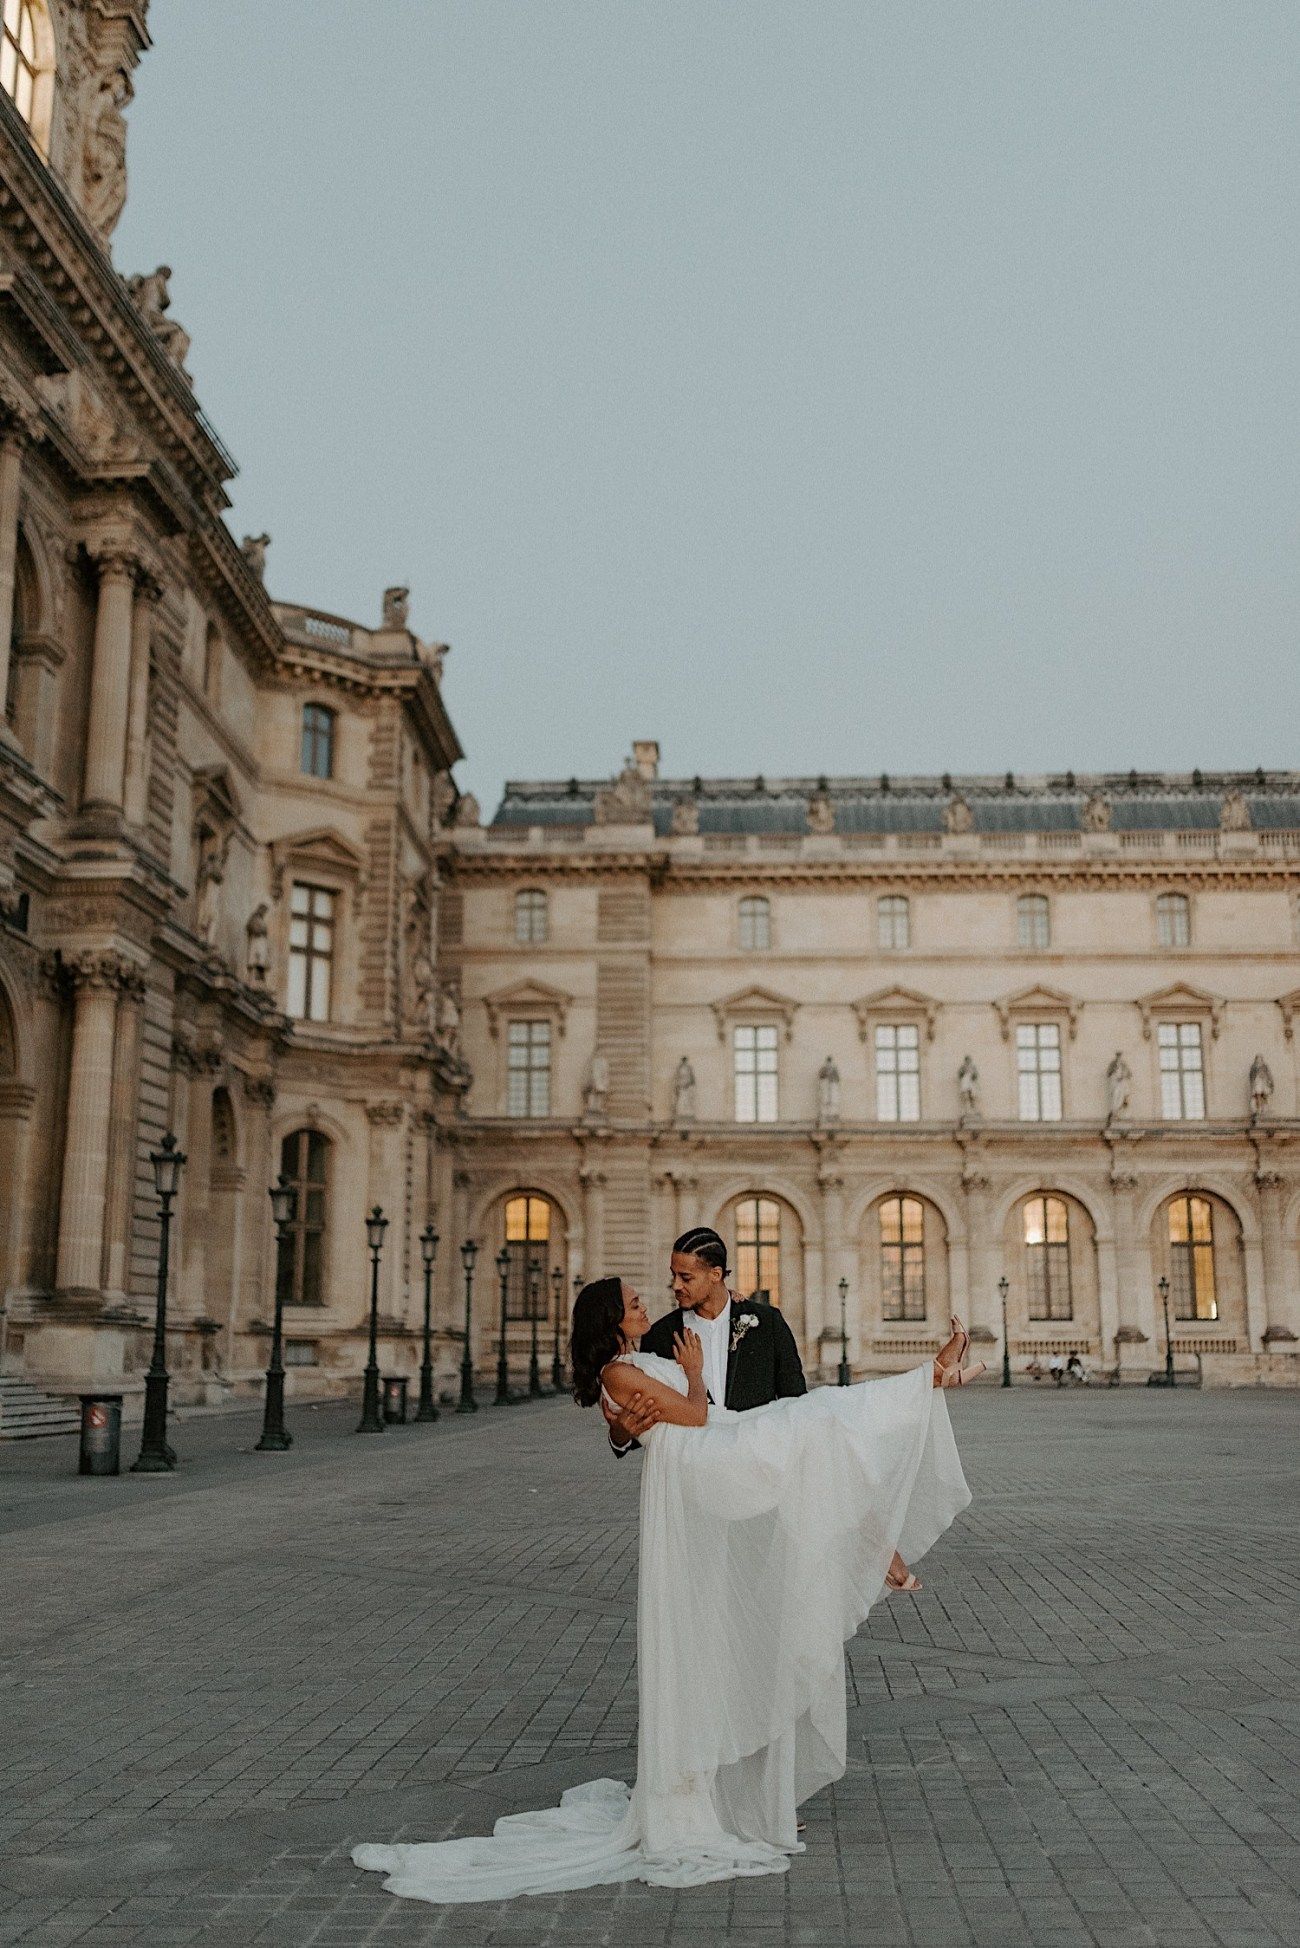 Paris Louvre Wedding Photos Paris Wedding Photographer Destination Wedding France Anais Possamai Photography 29